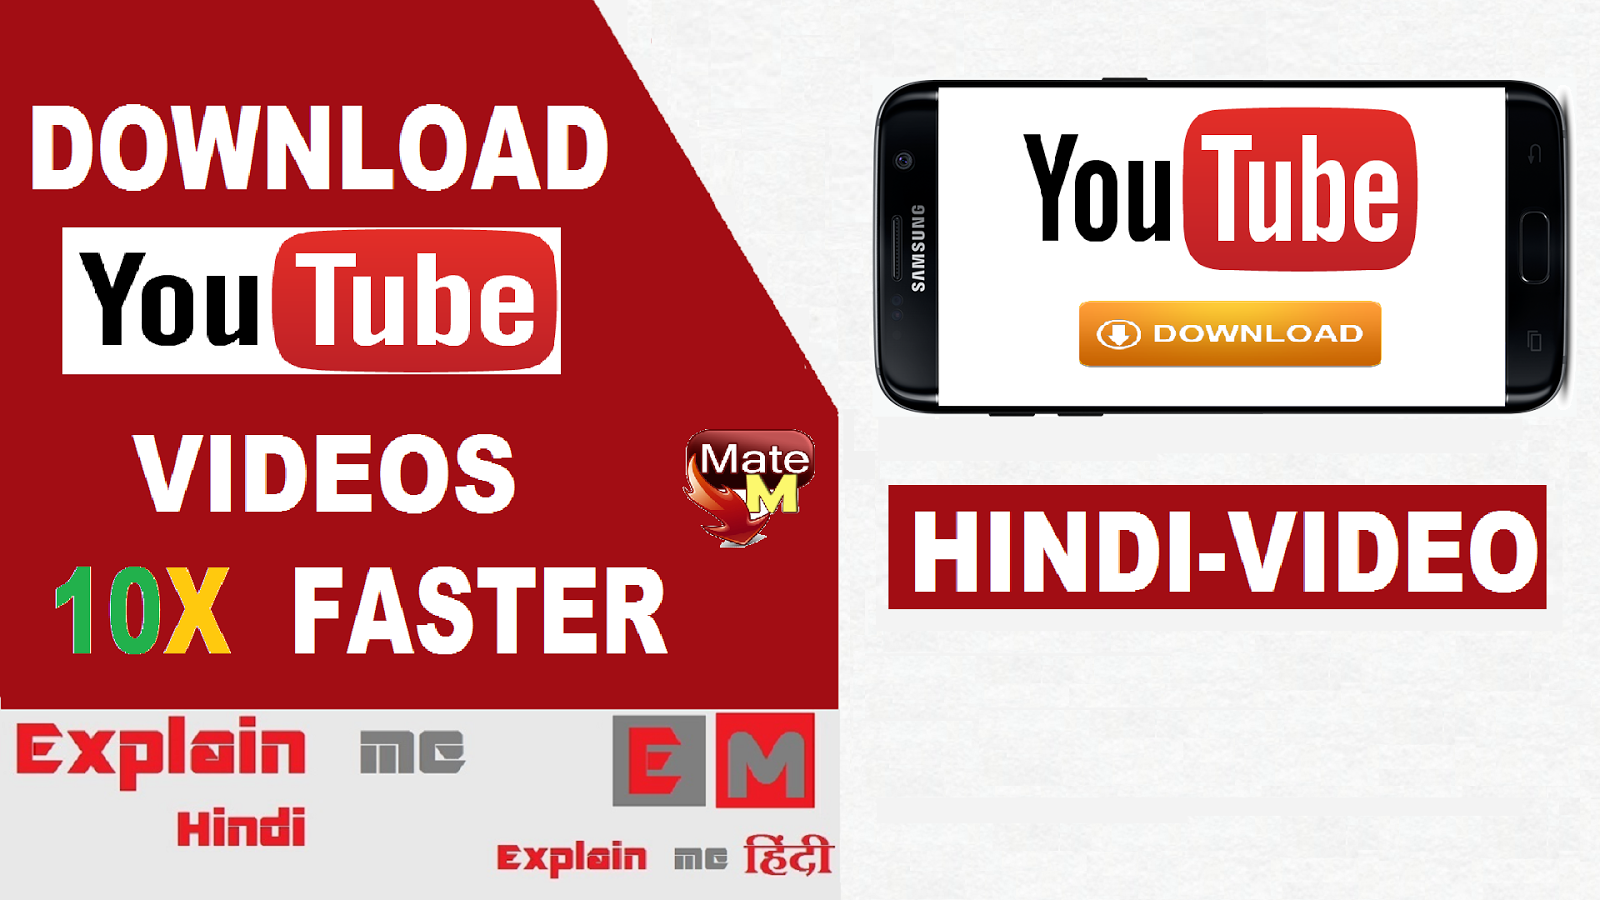 This Video Show You A Very Somple Method To Download Youtube Videos 10x  Times Faster On